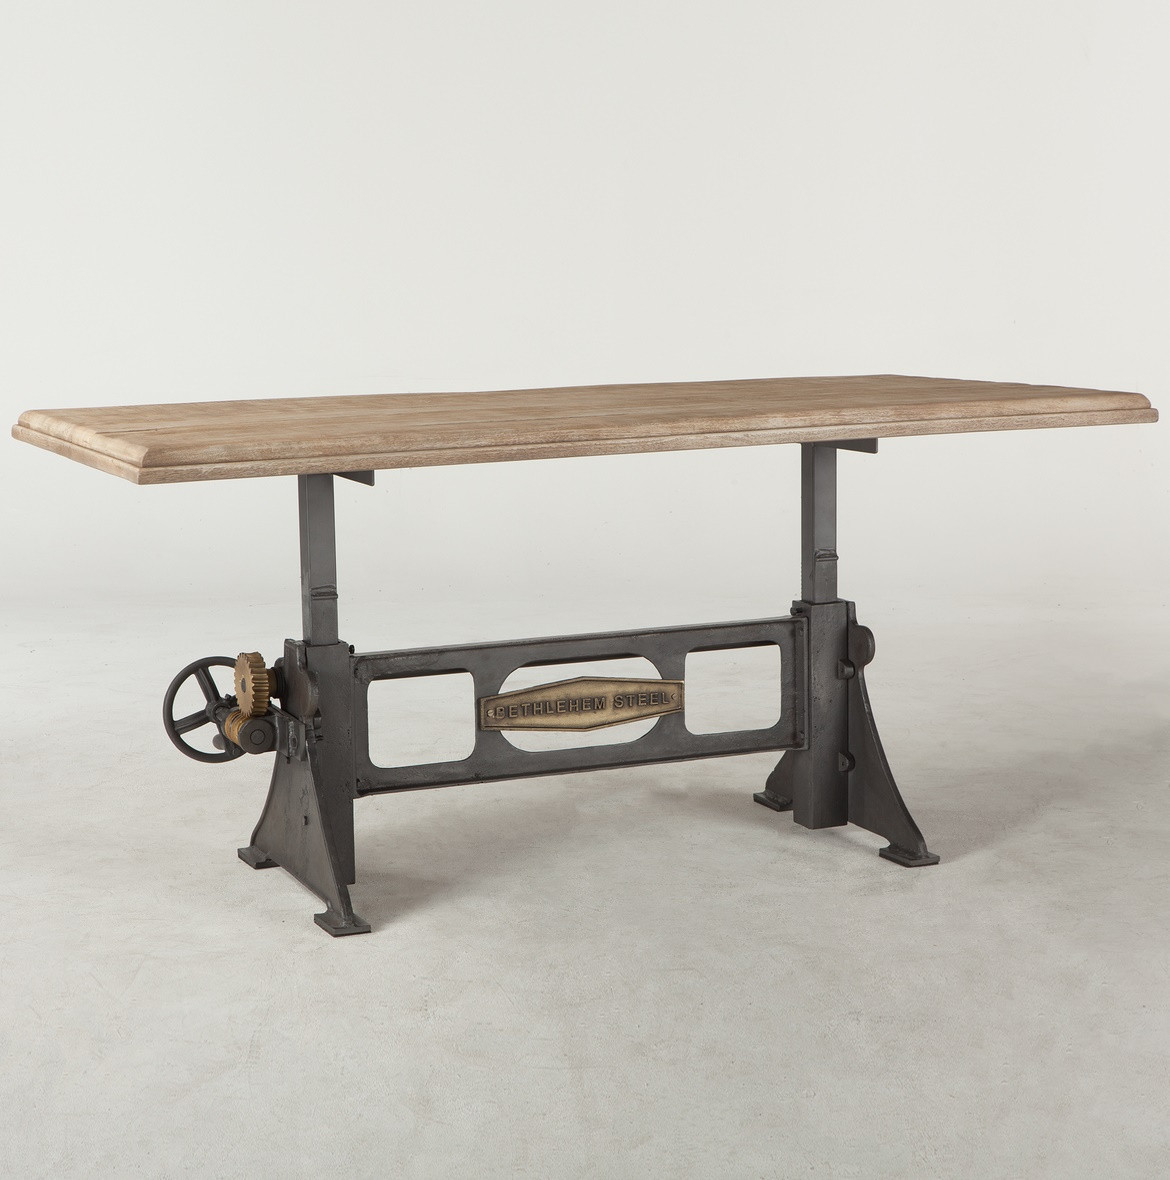 steampunk industrial steel + wood crank dining table 72"